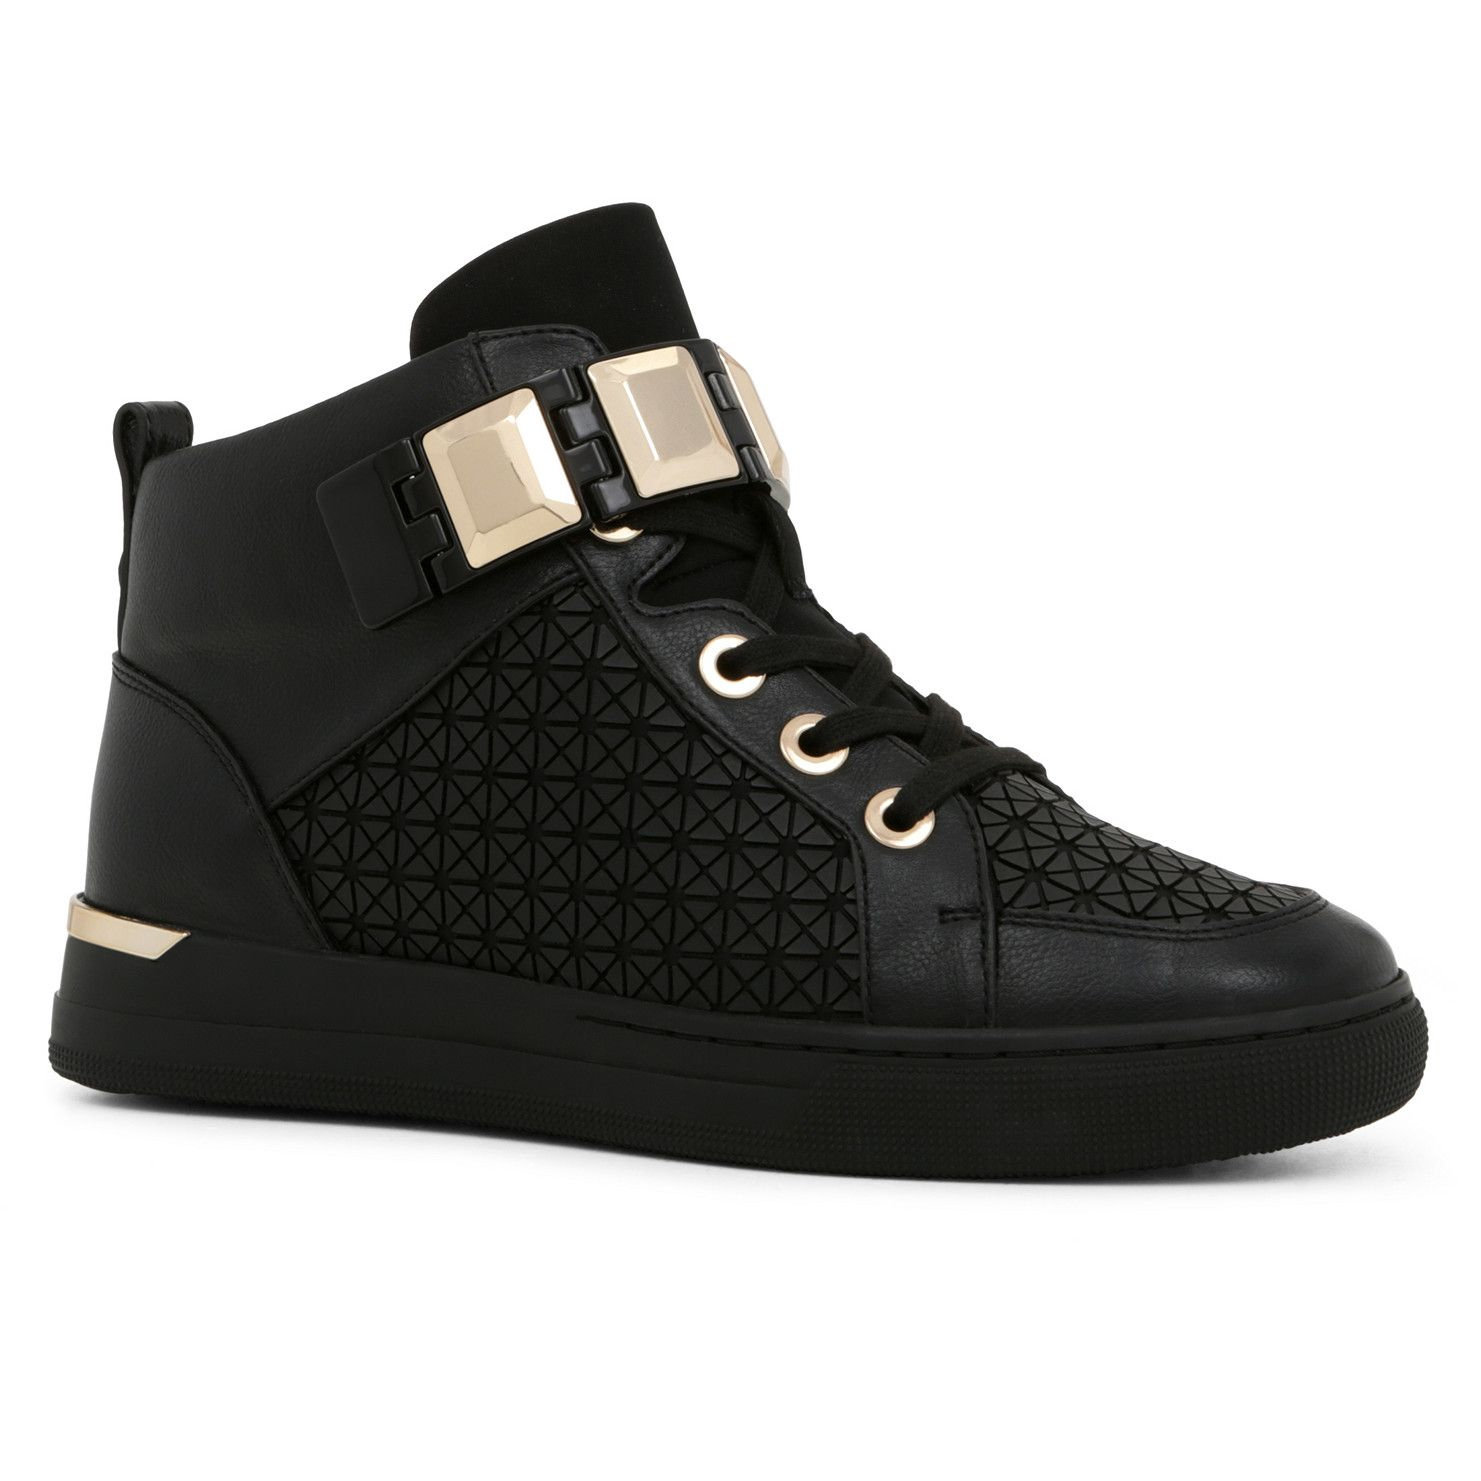 Choilla Black Women's Sneakers | ALDO US